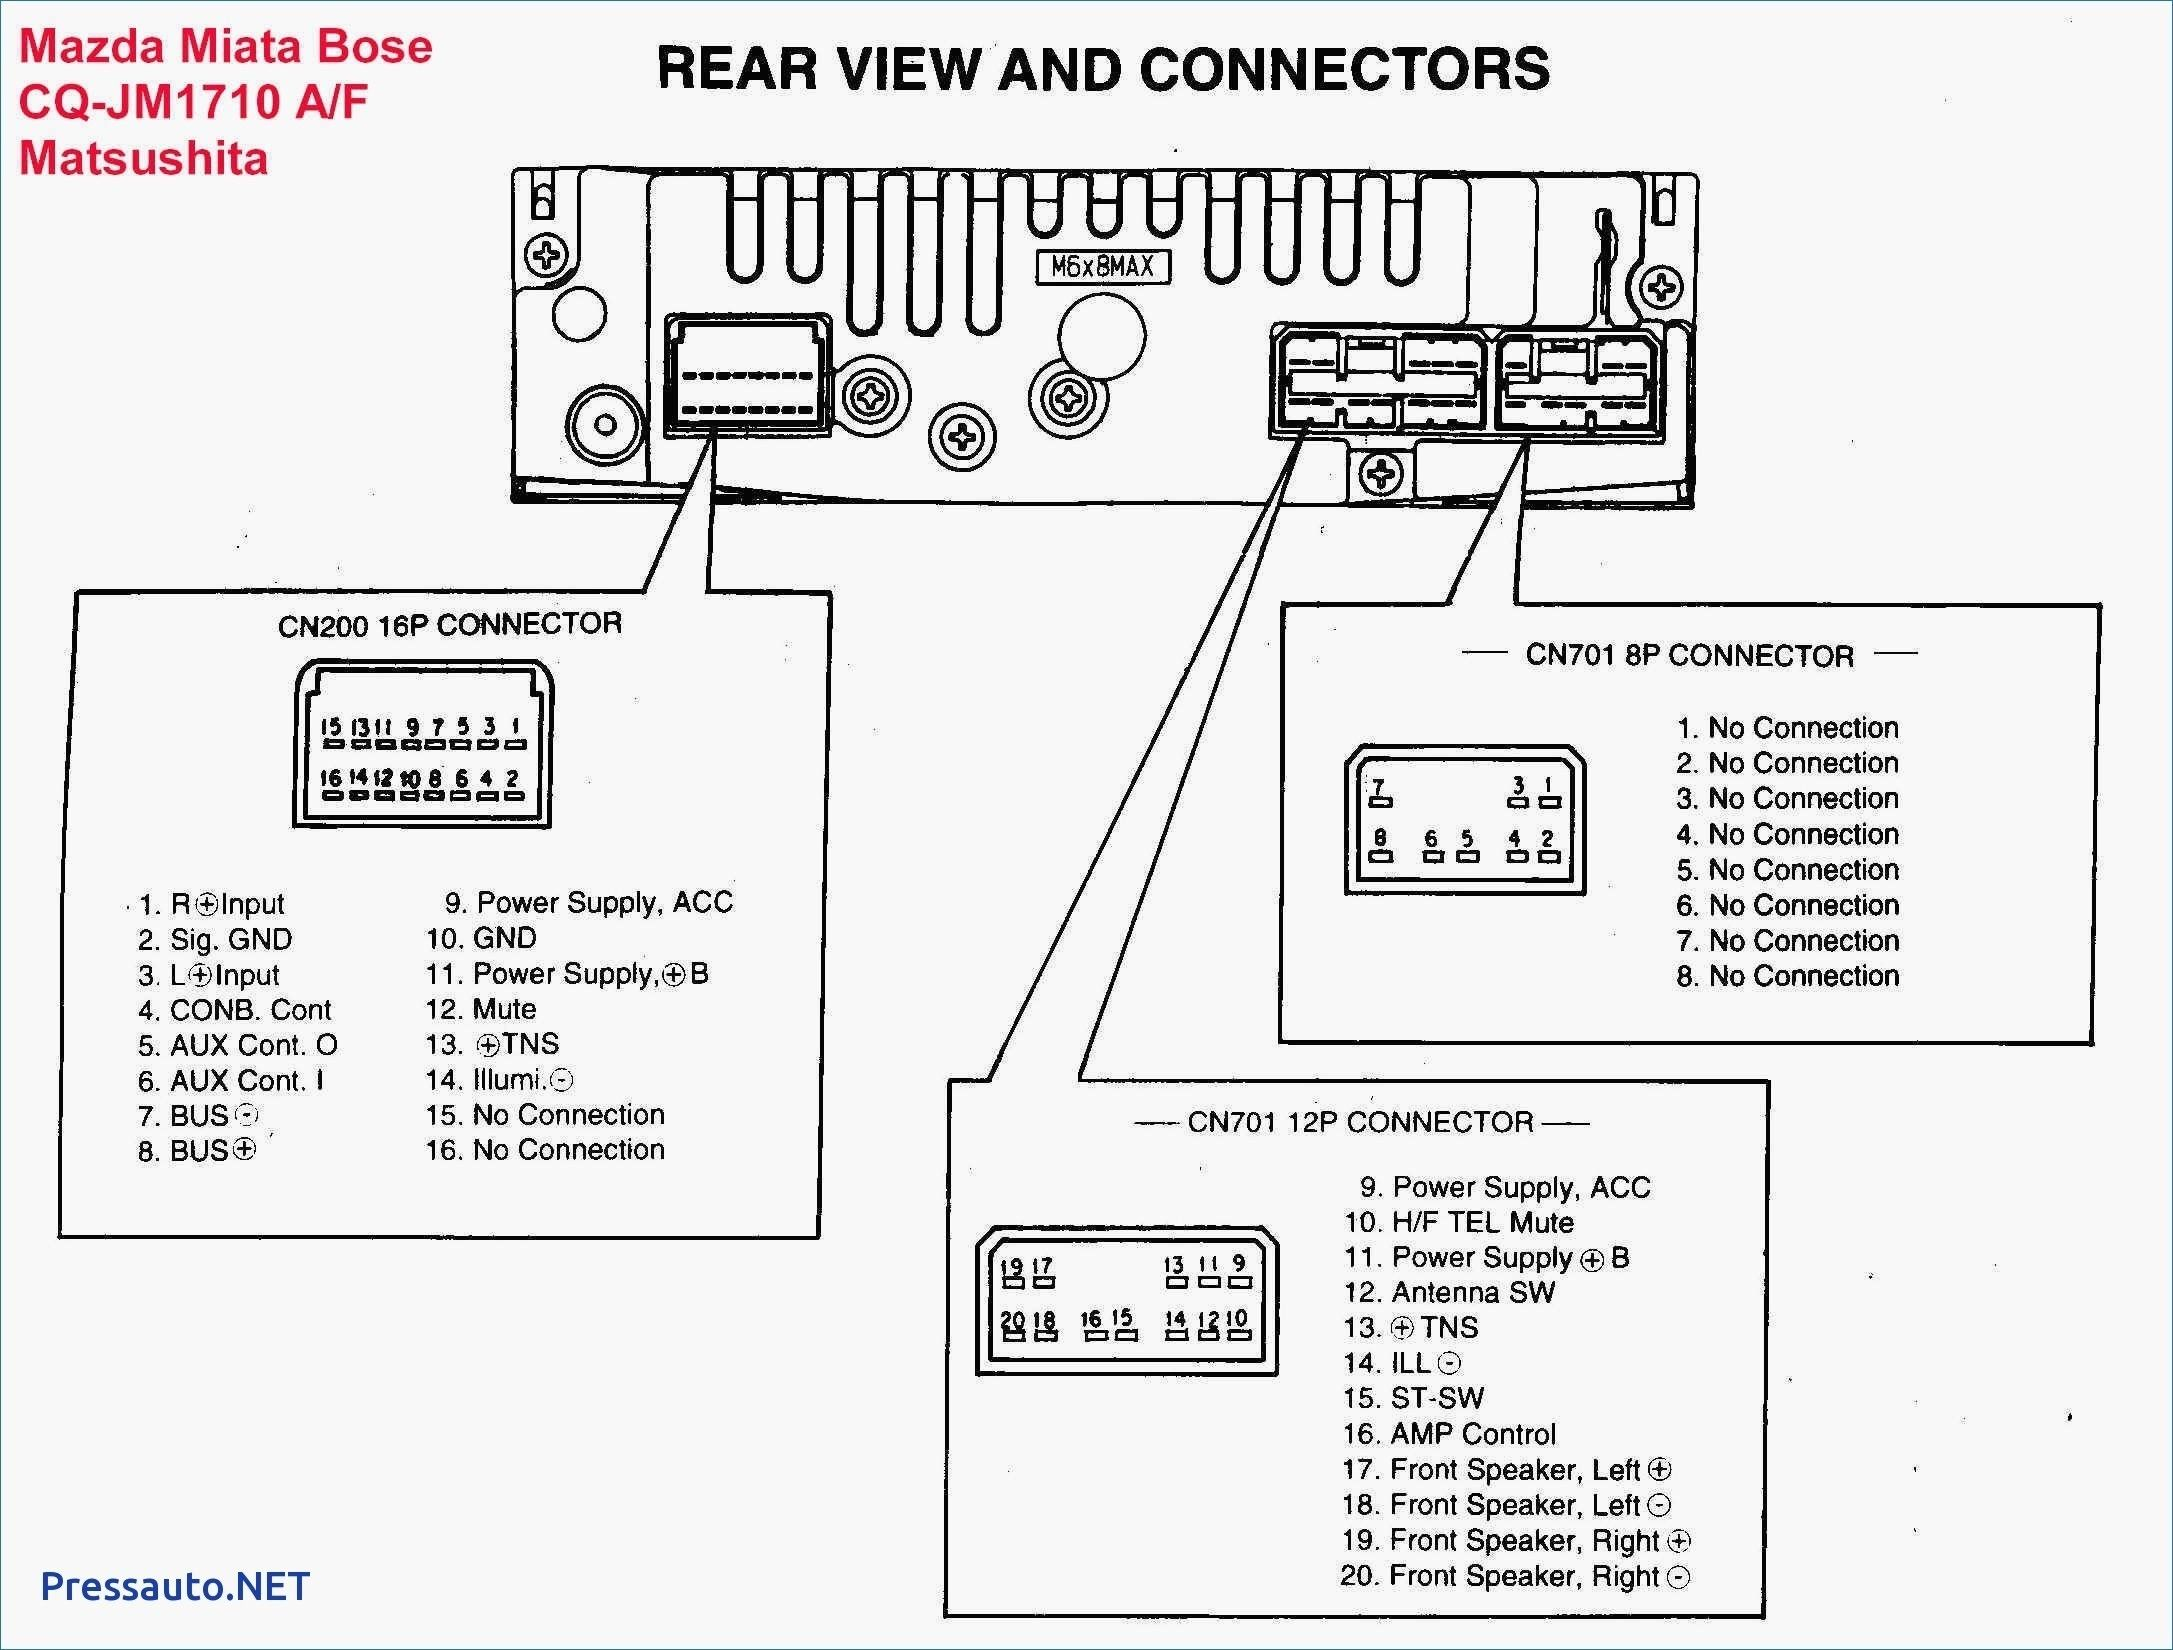 New R33 Alternator Wiring Diagram Diagrams Digramssample Diagramimages Check More At Https Nostoc Co R33 Alternator Wiring Diag Nissan Maxima Radio Nissan